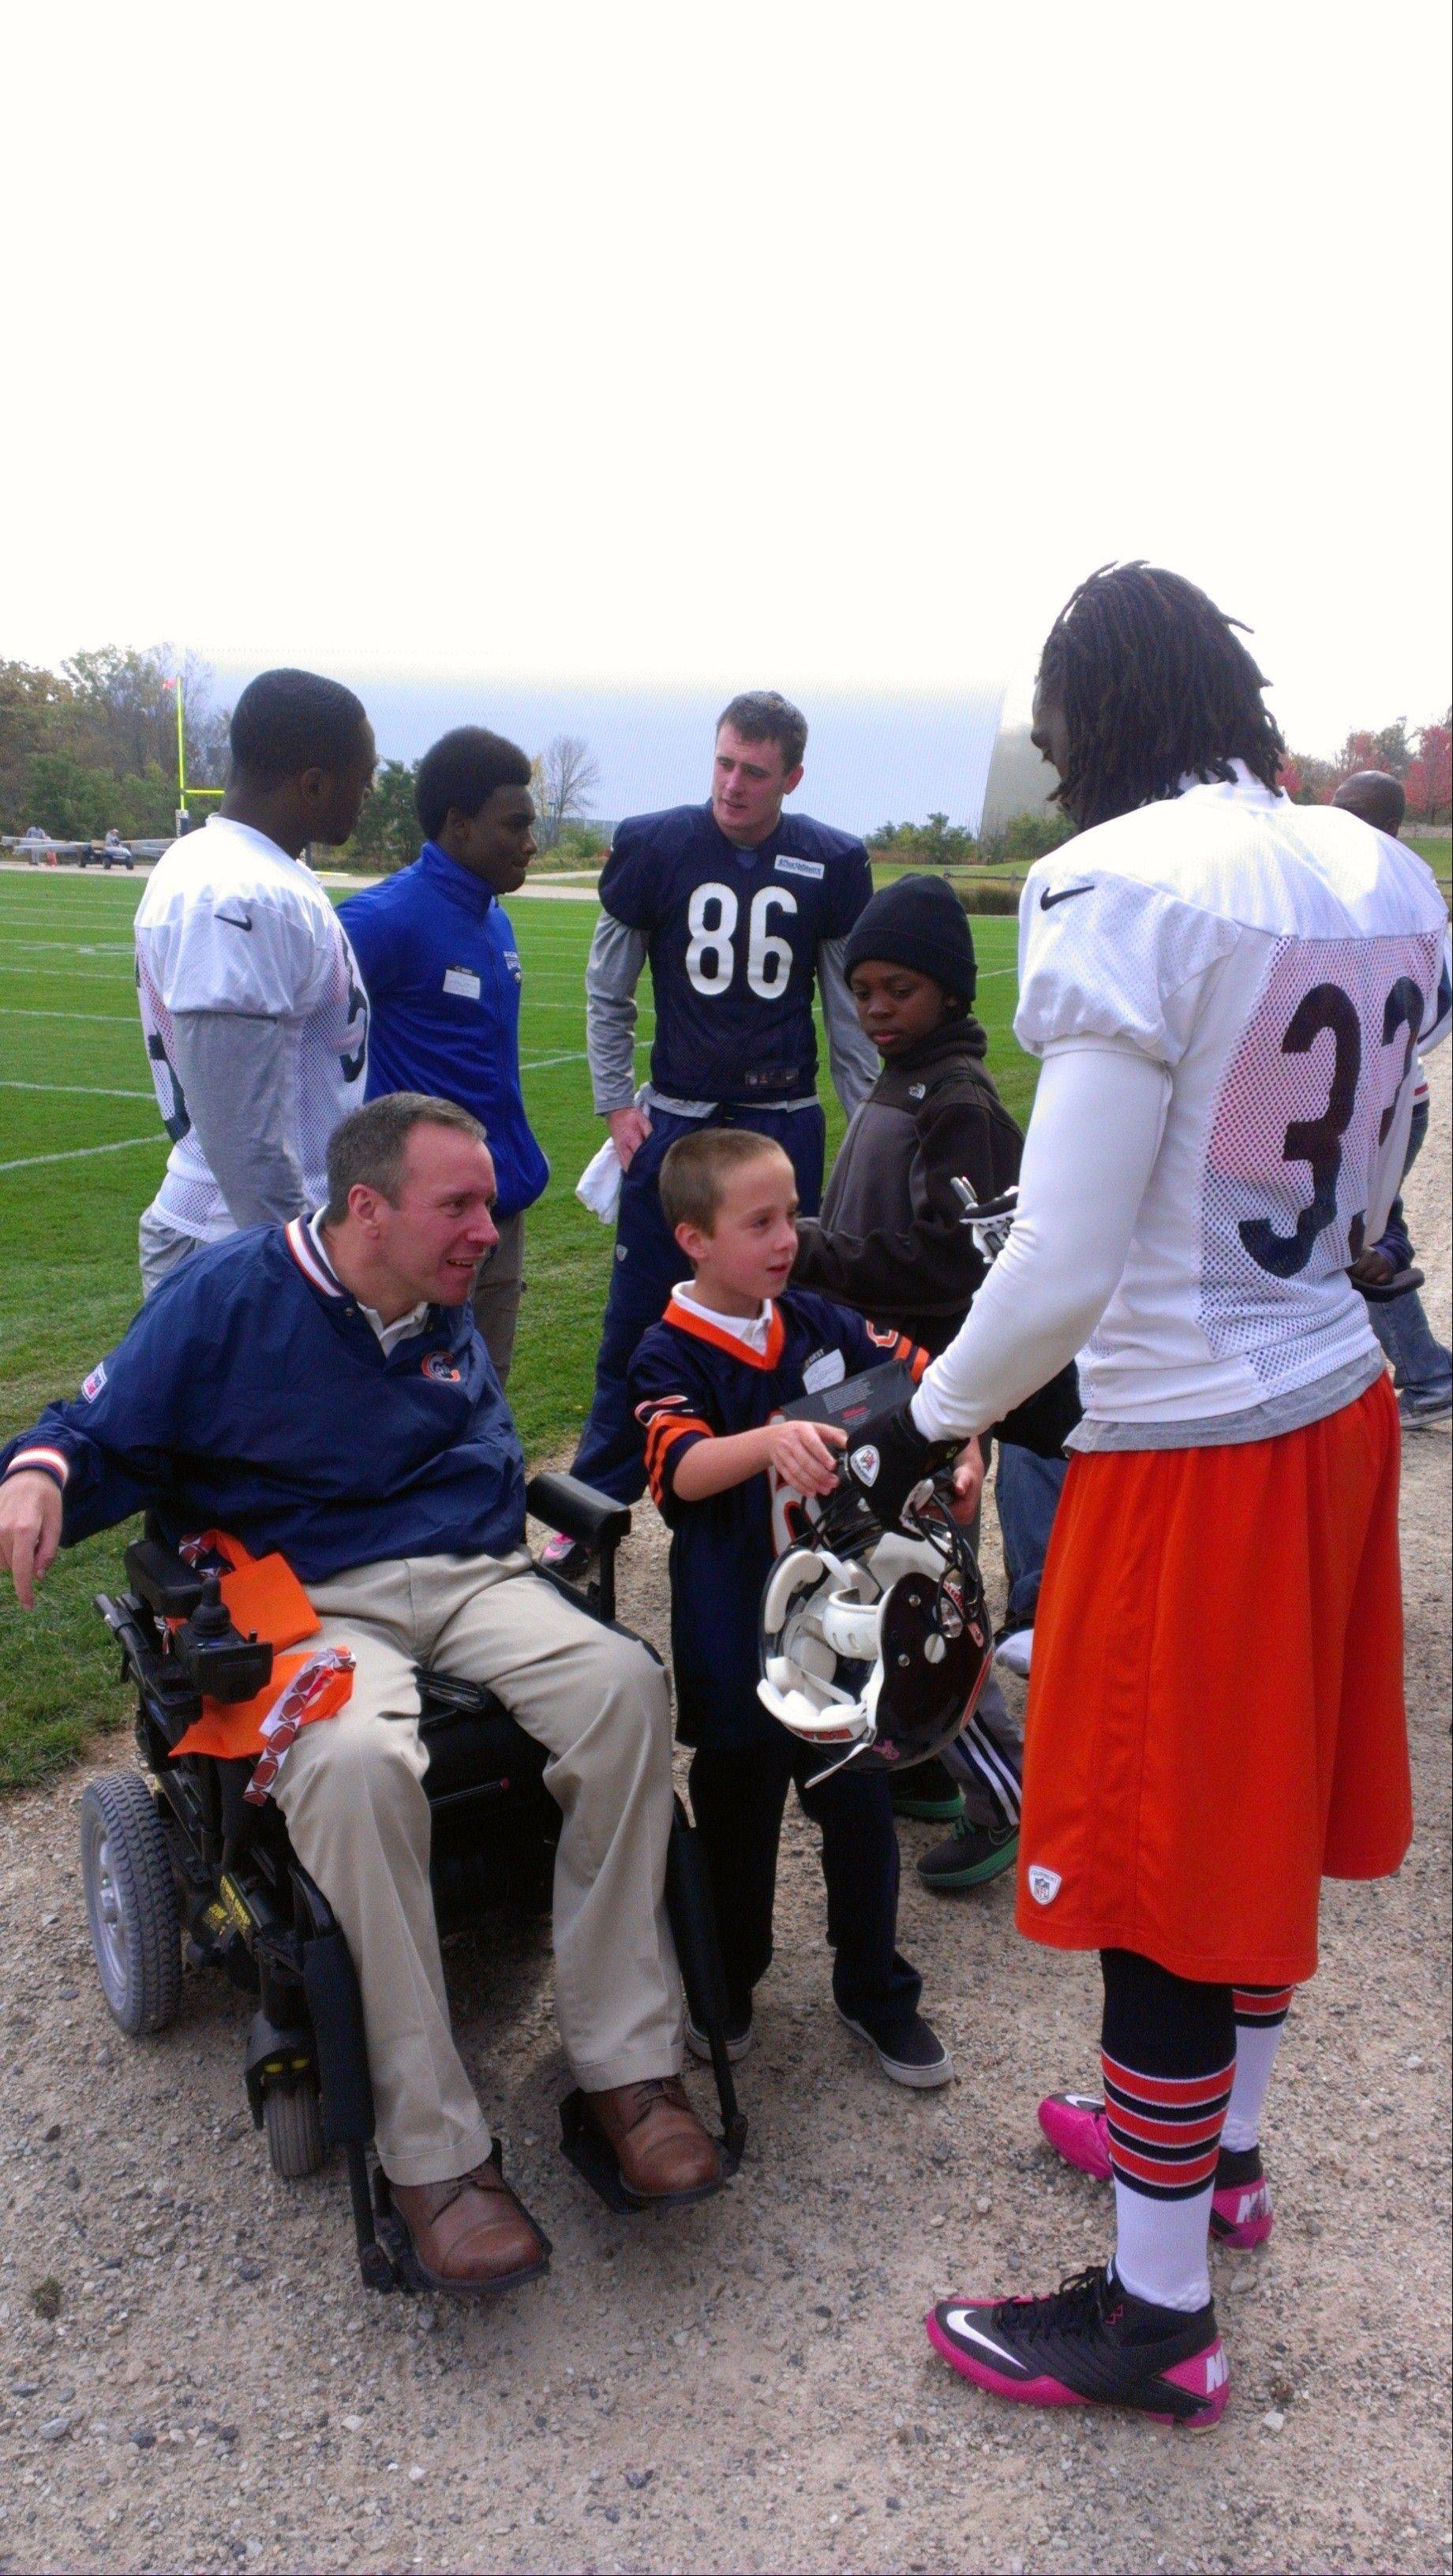 Bears All-Pro cornerback Charles Tillman visits with Steve Herbst and his son, Jack, of Palatine. Injured in a football practice 32 years ago, Herbst is on the board of the Gridiron Alliance charity, which advocates for athletes with catastrophic injuries.